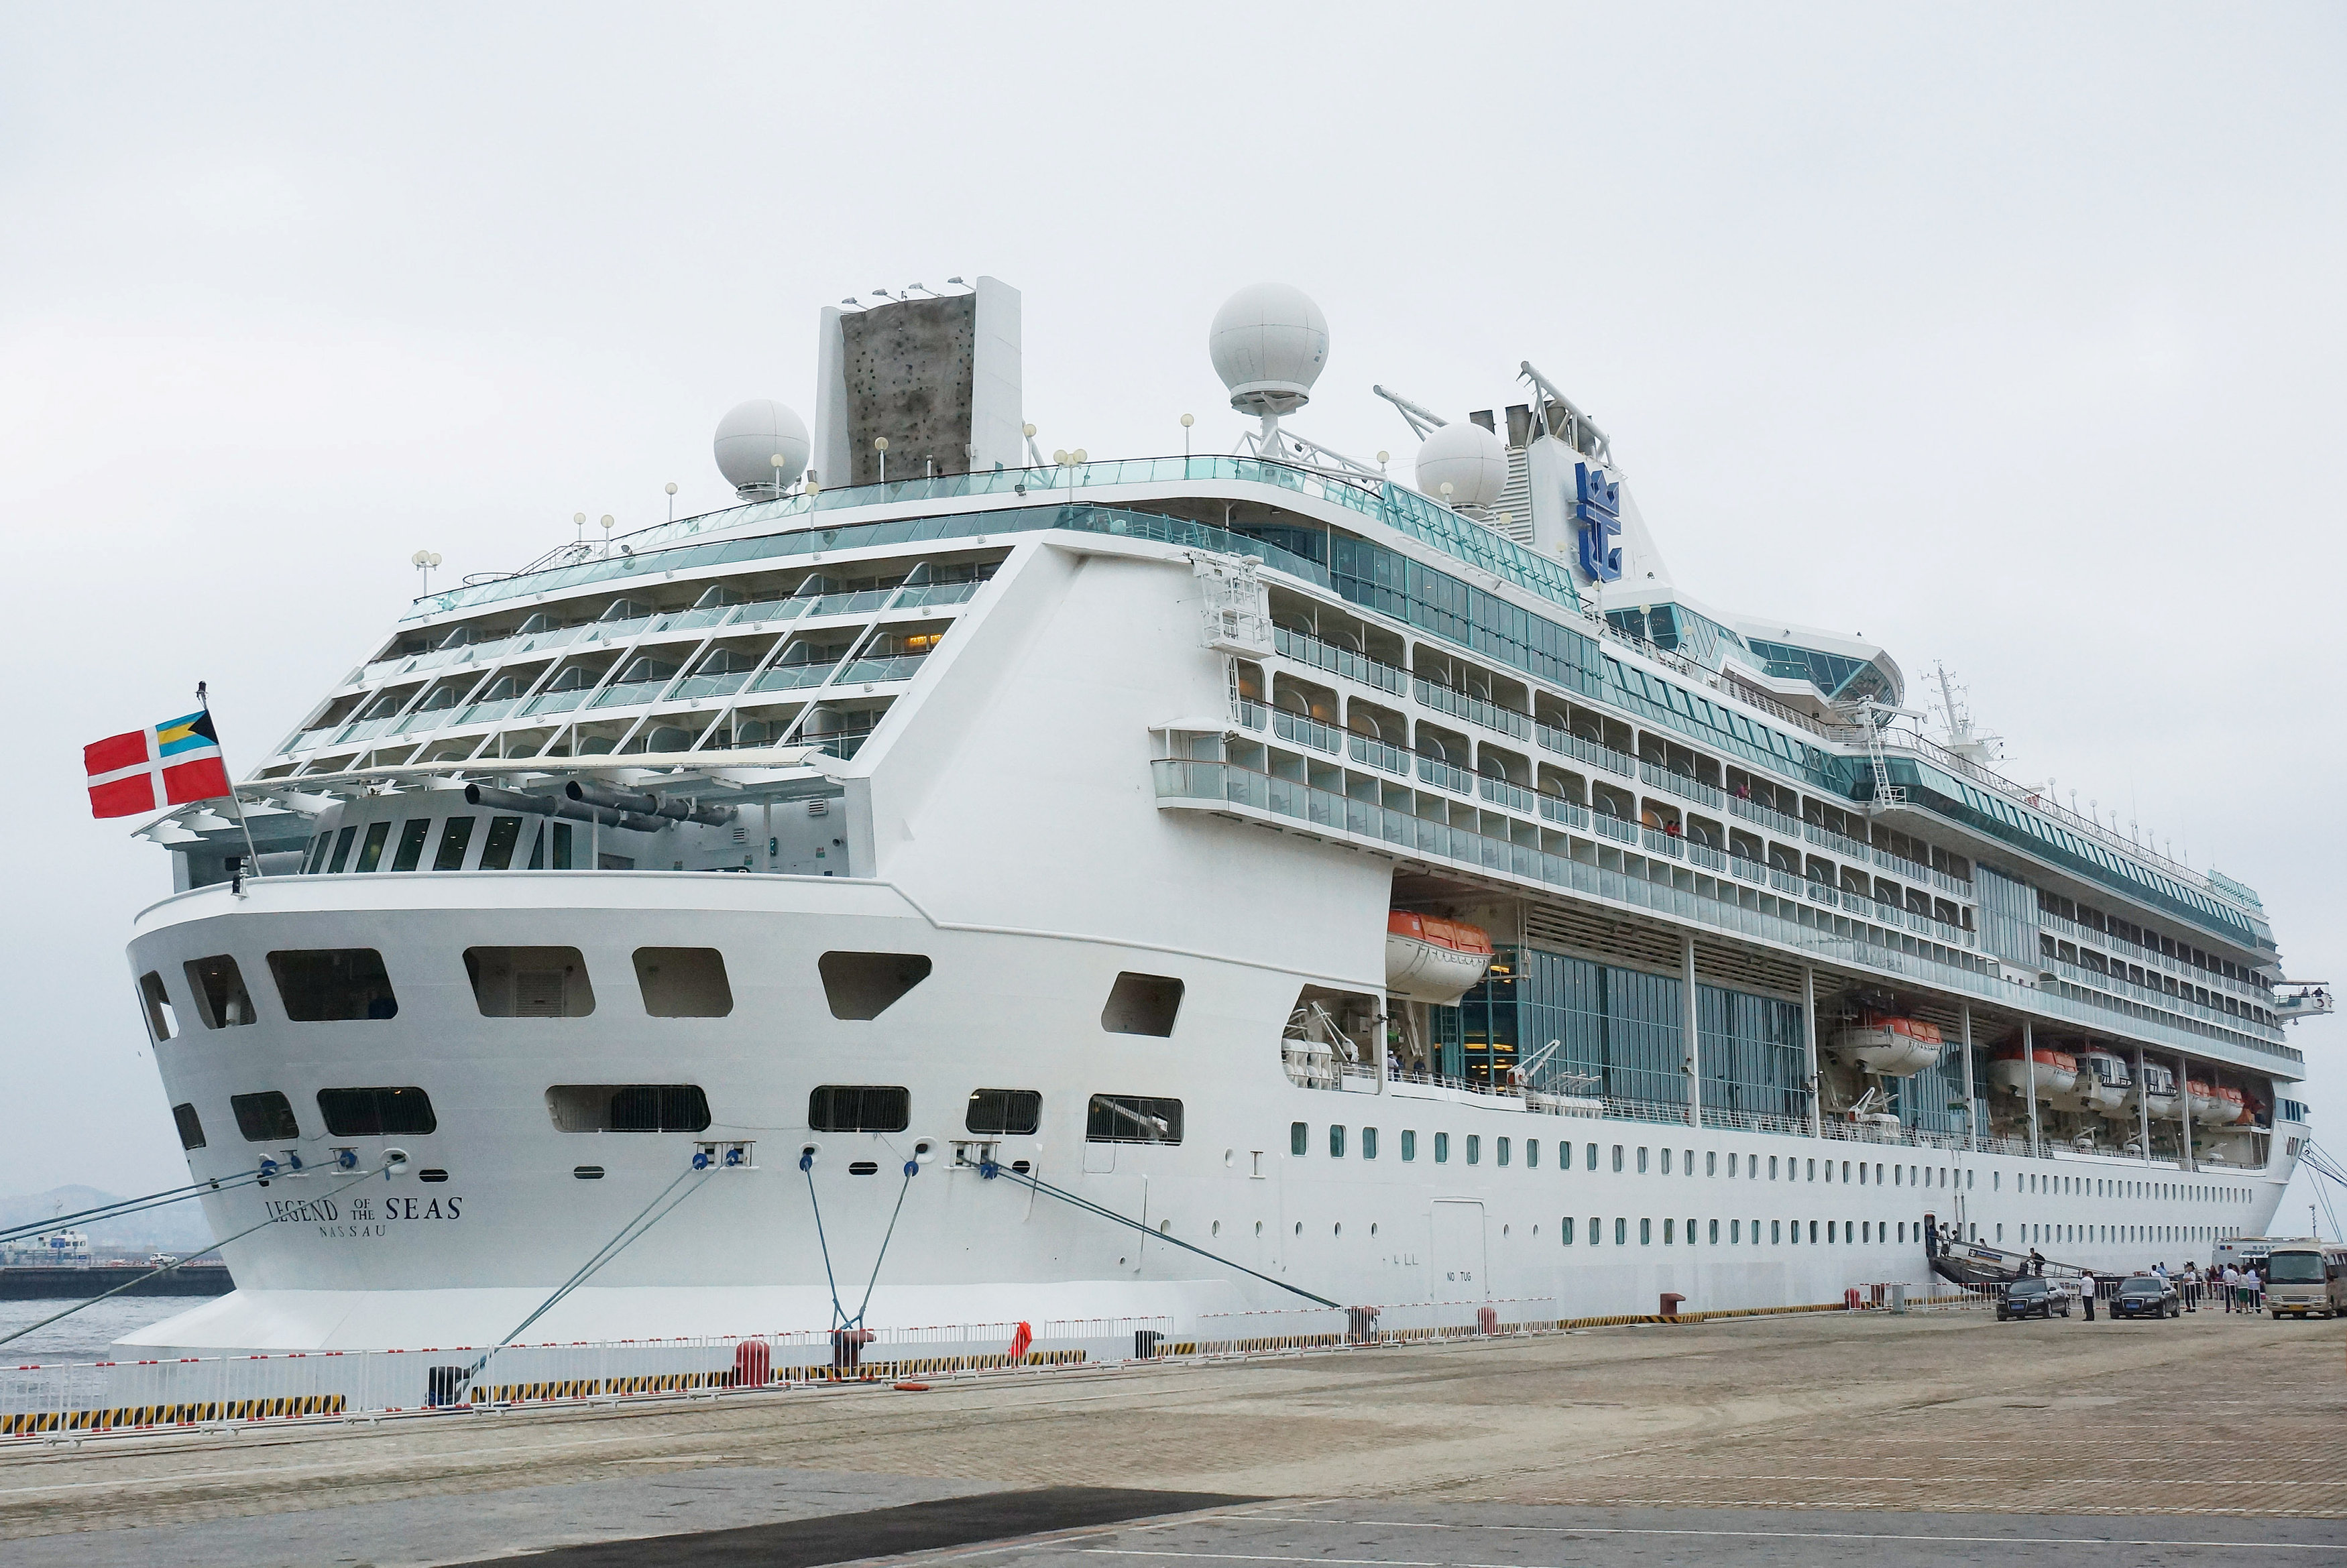 A Royal Caribbean cruise is seen at a port in Dalian, Liaoning province, China, July 20, 2017. Picture taken July 20, 2017. REUTERS/Stringer